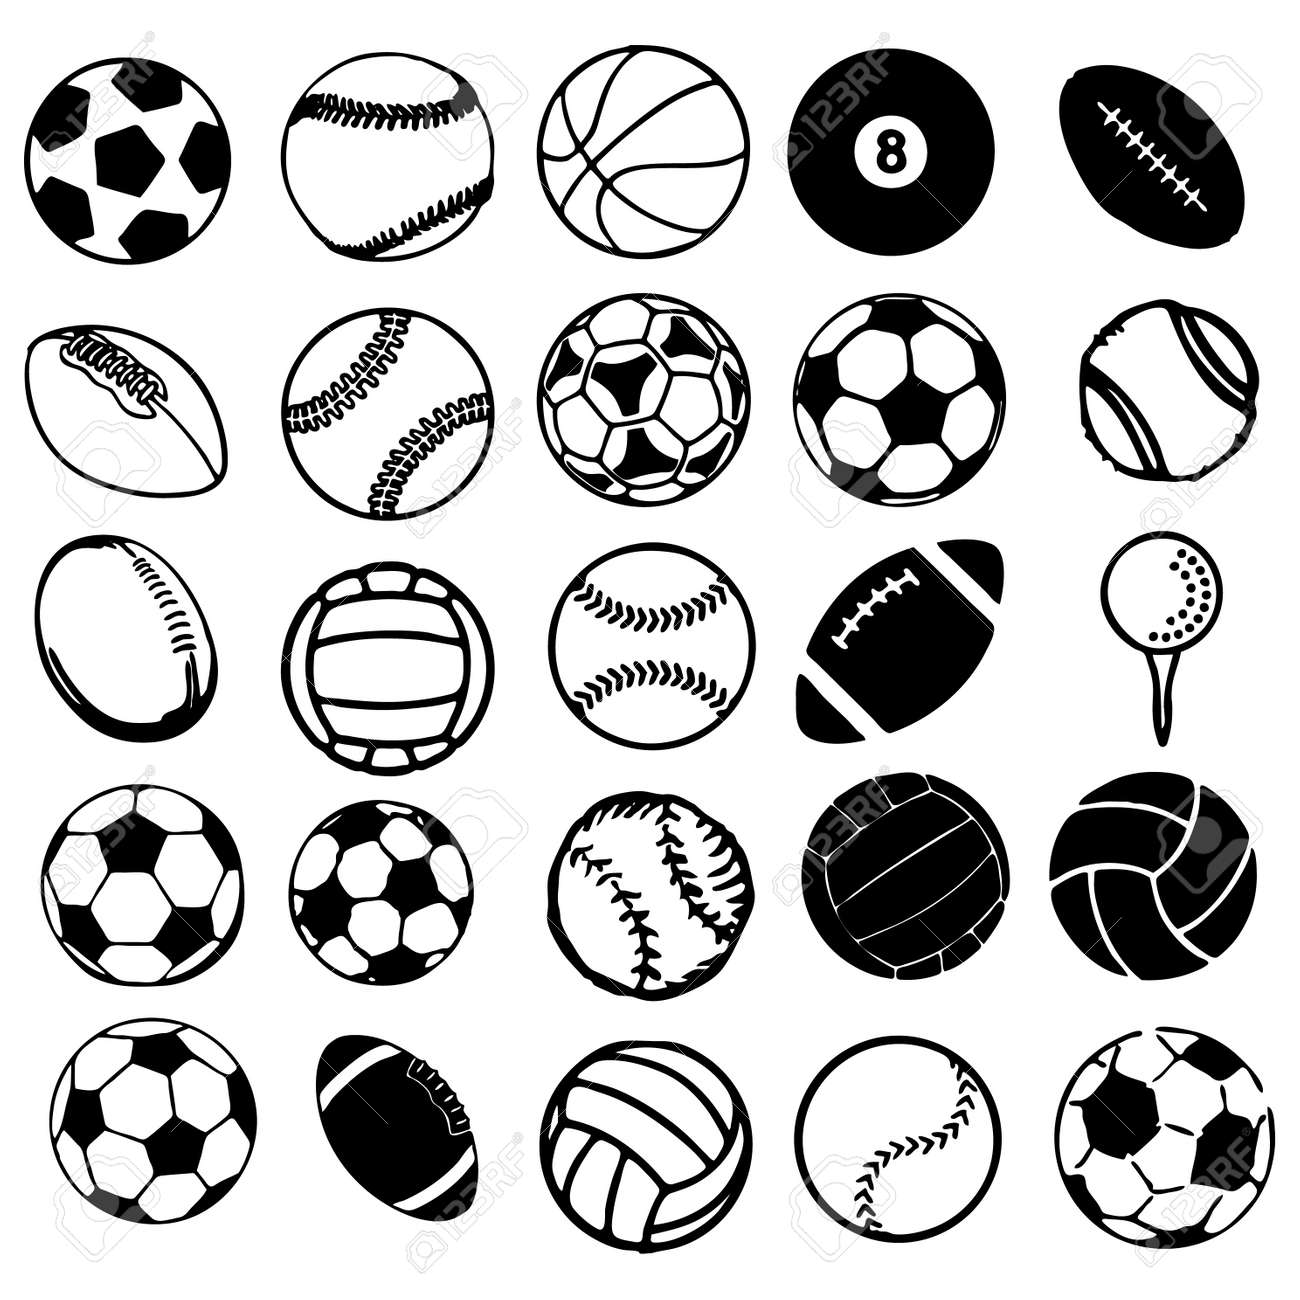 illustration set ball sports icons symbols comic vector illustration - Sports Drawing Pictures